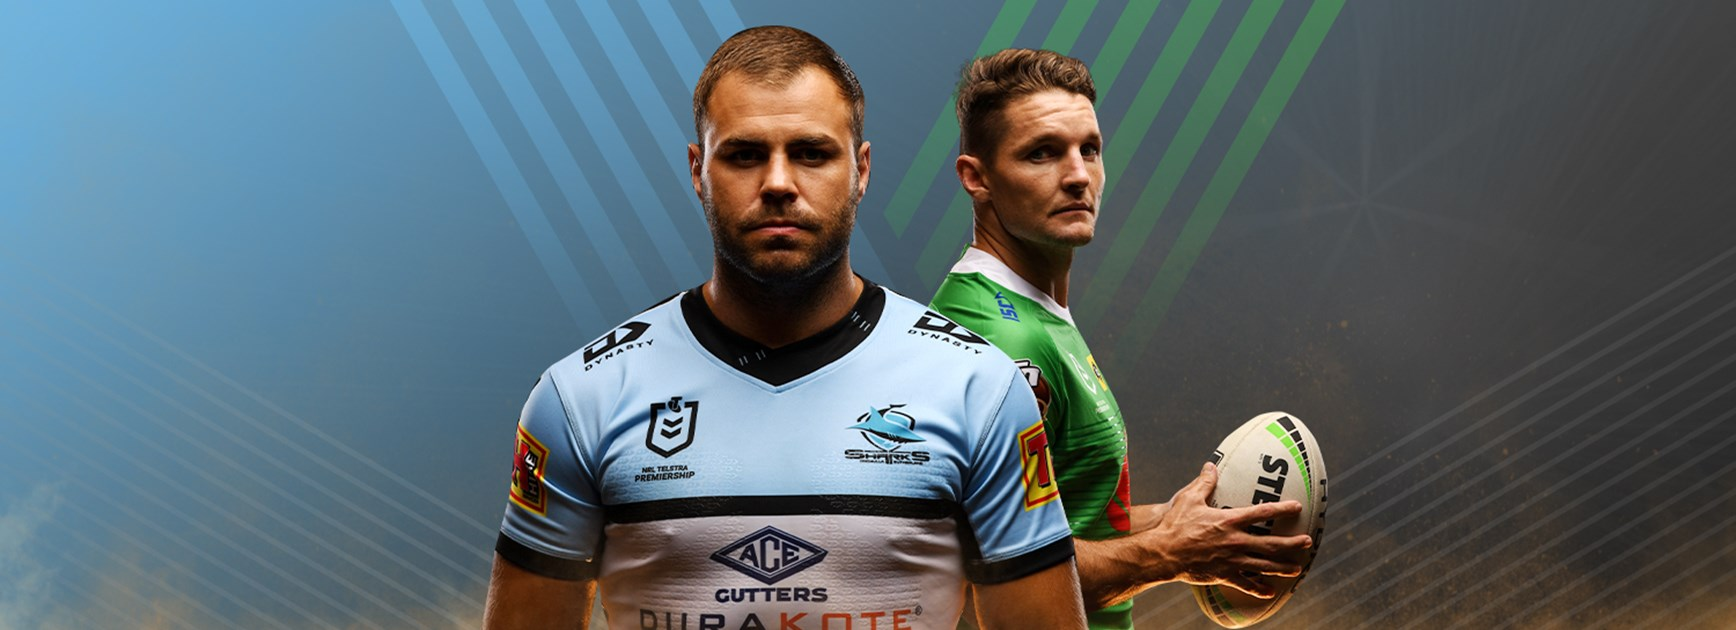 Elimination Final Preview - Sharks v Raiders